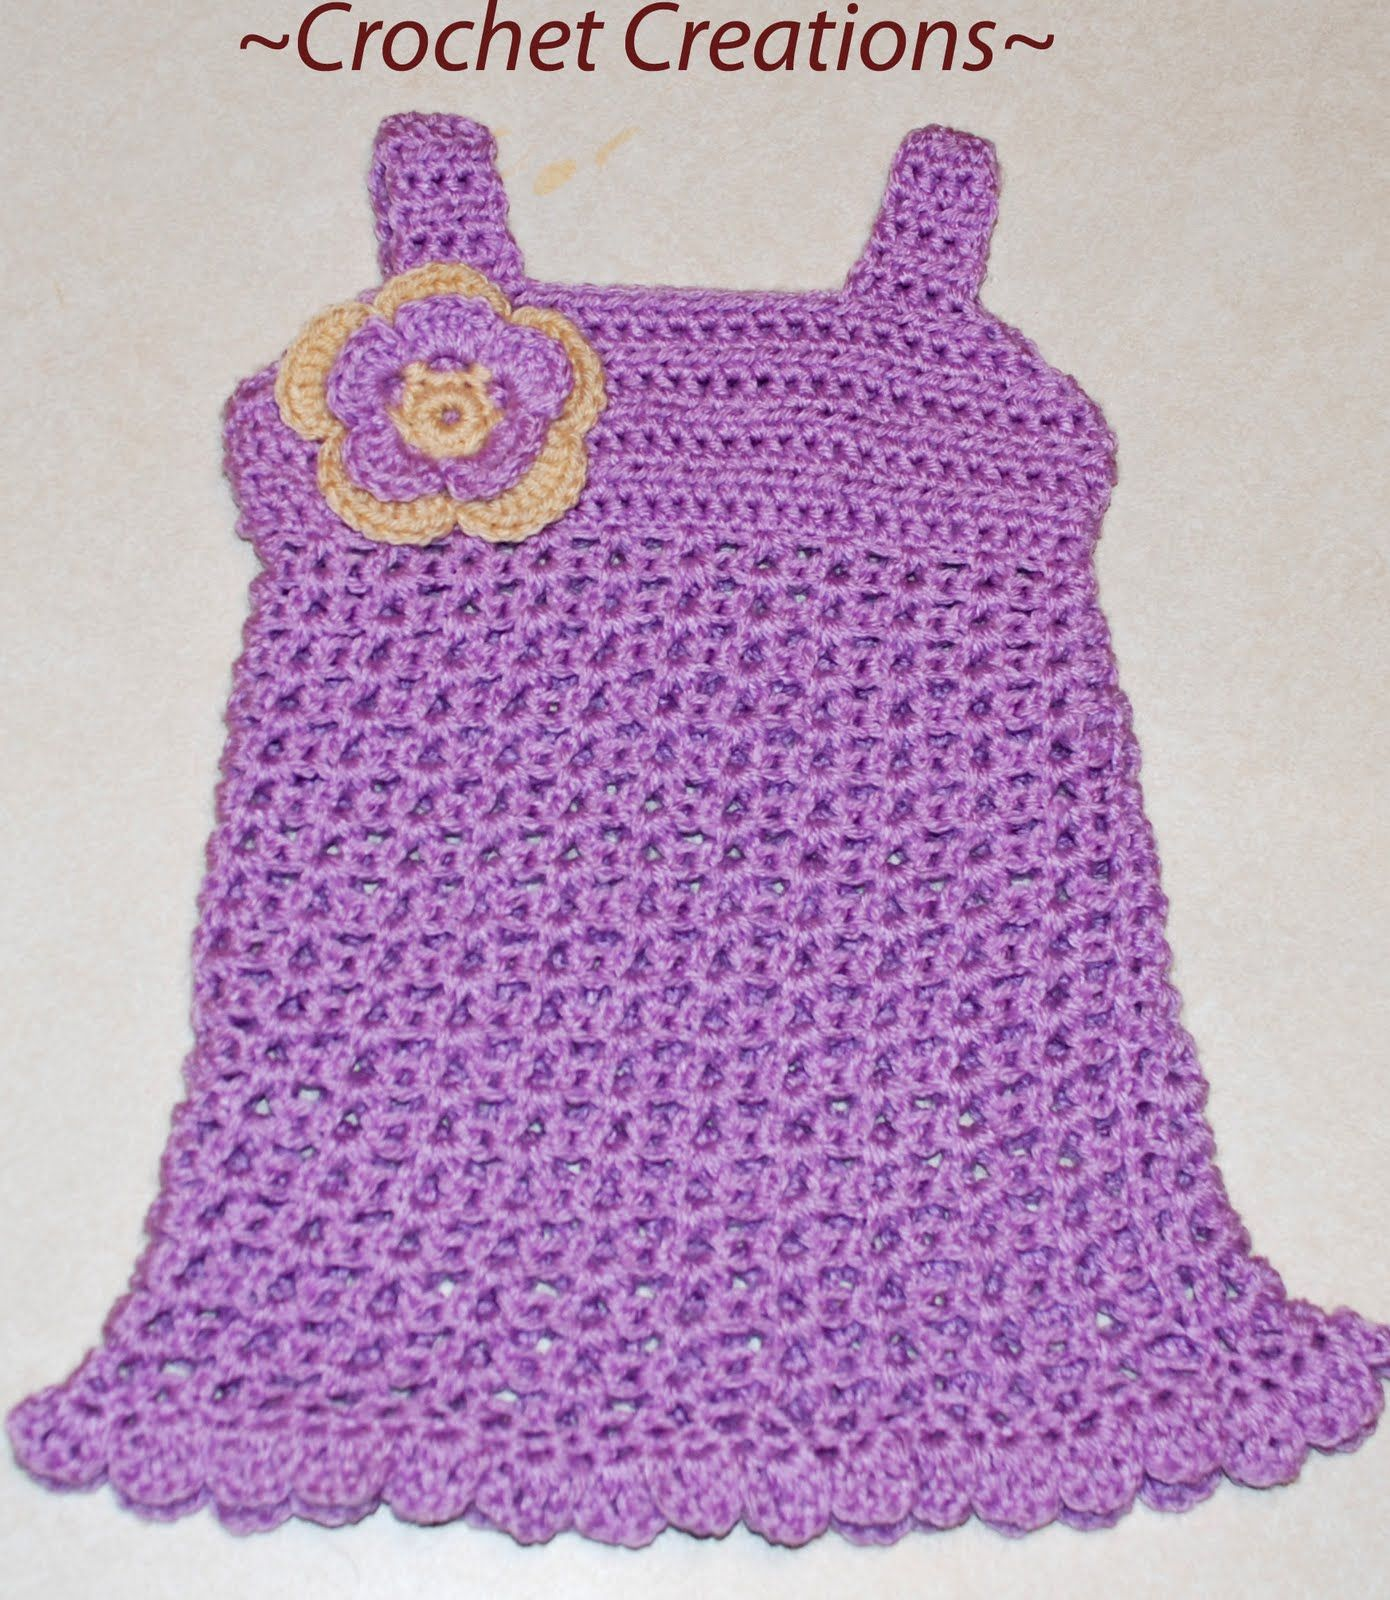 Crochet Creative Creations- Free Patterns and Instructions: Crochet Baby dress